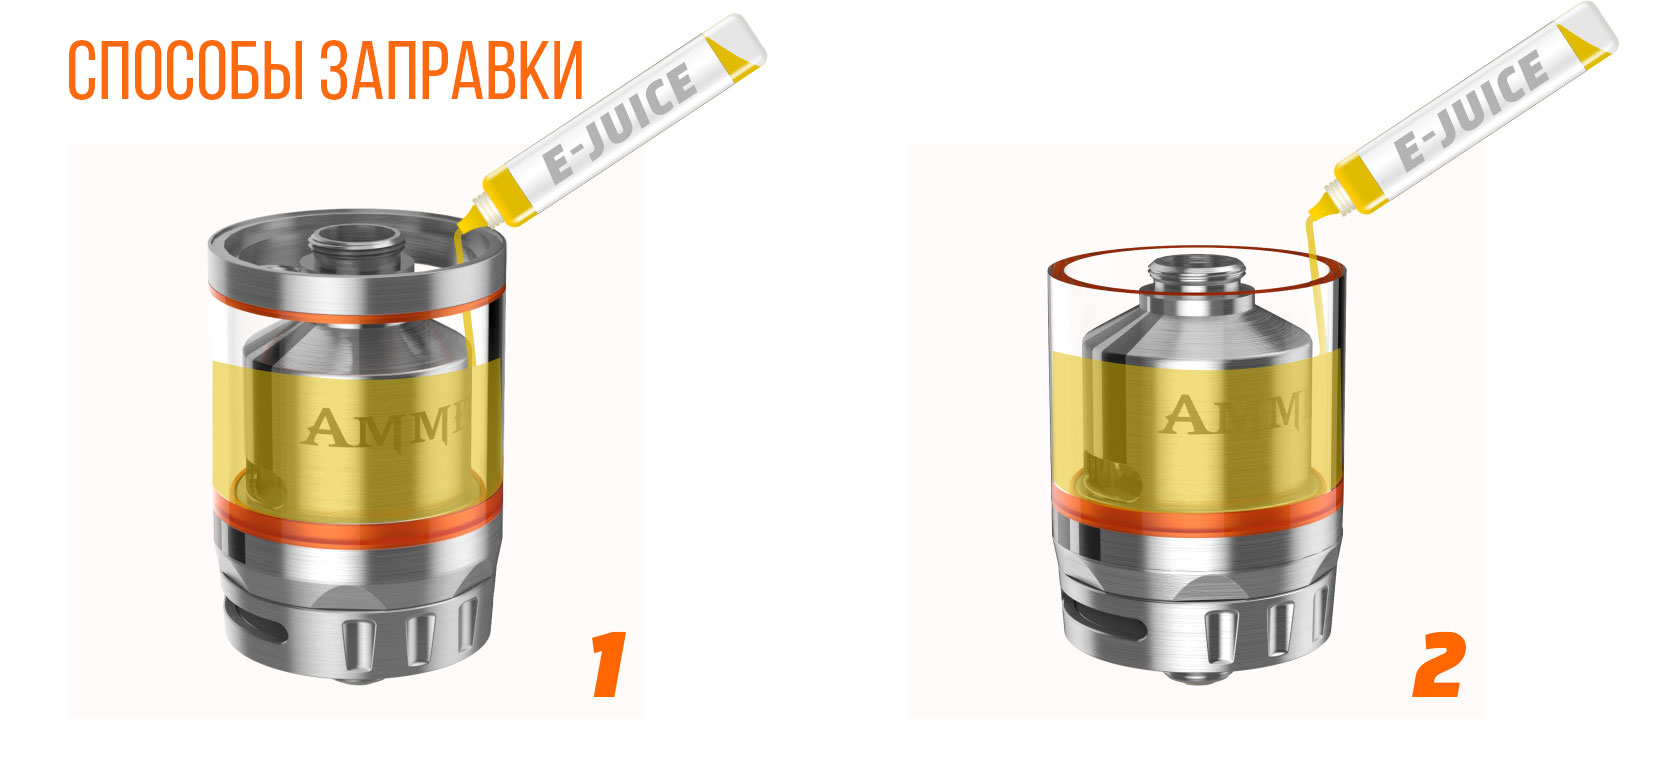 AMMIT dual coil rta two refilling ways new